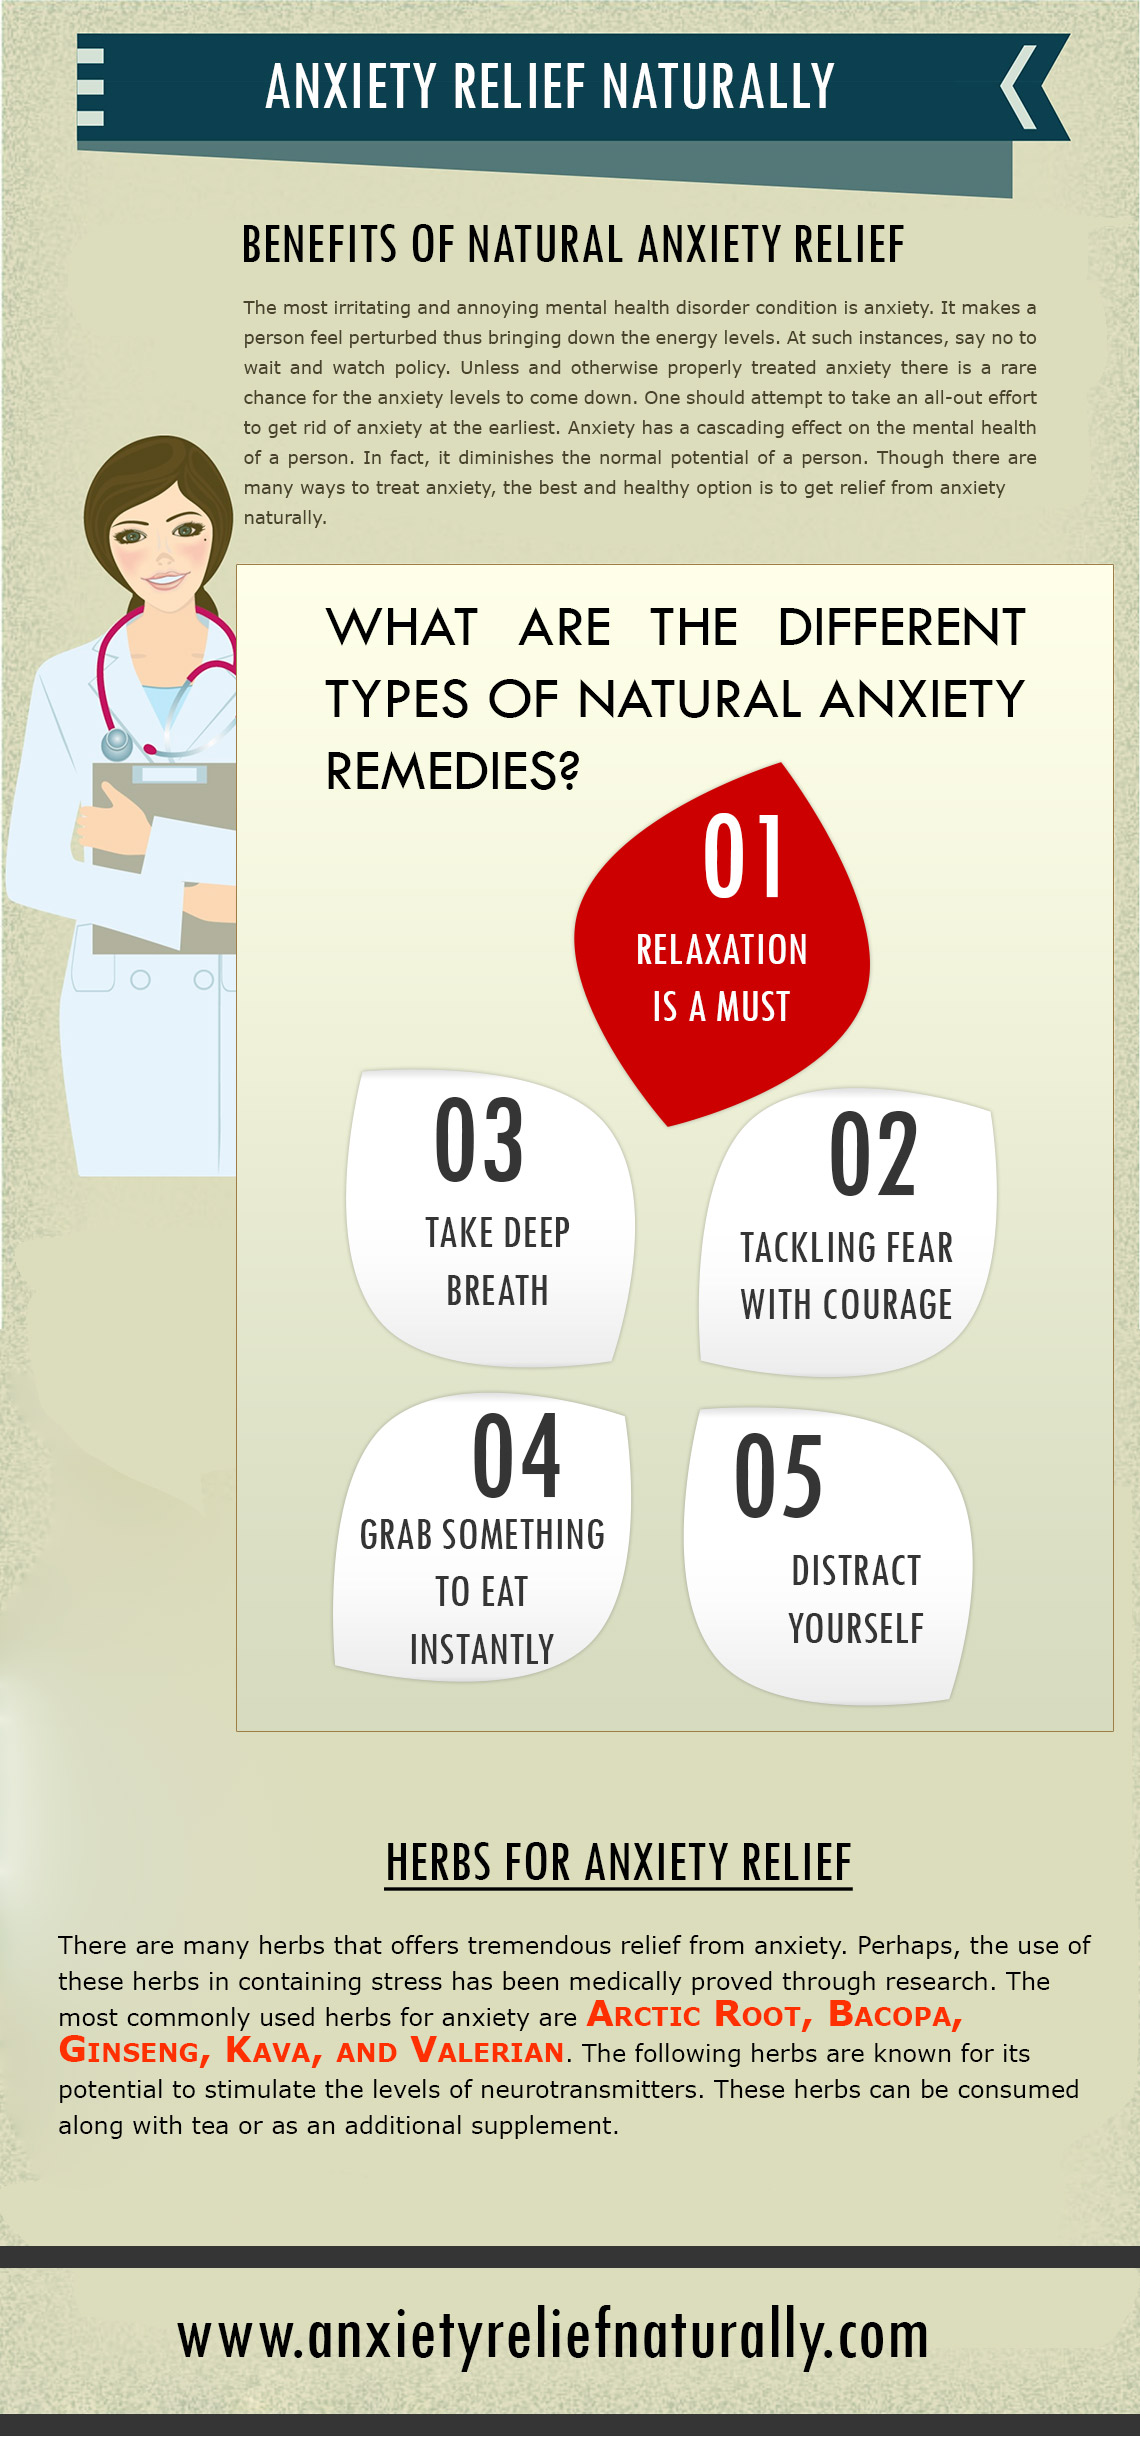 anxiety relief naturally info